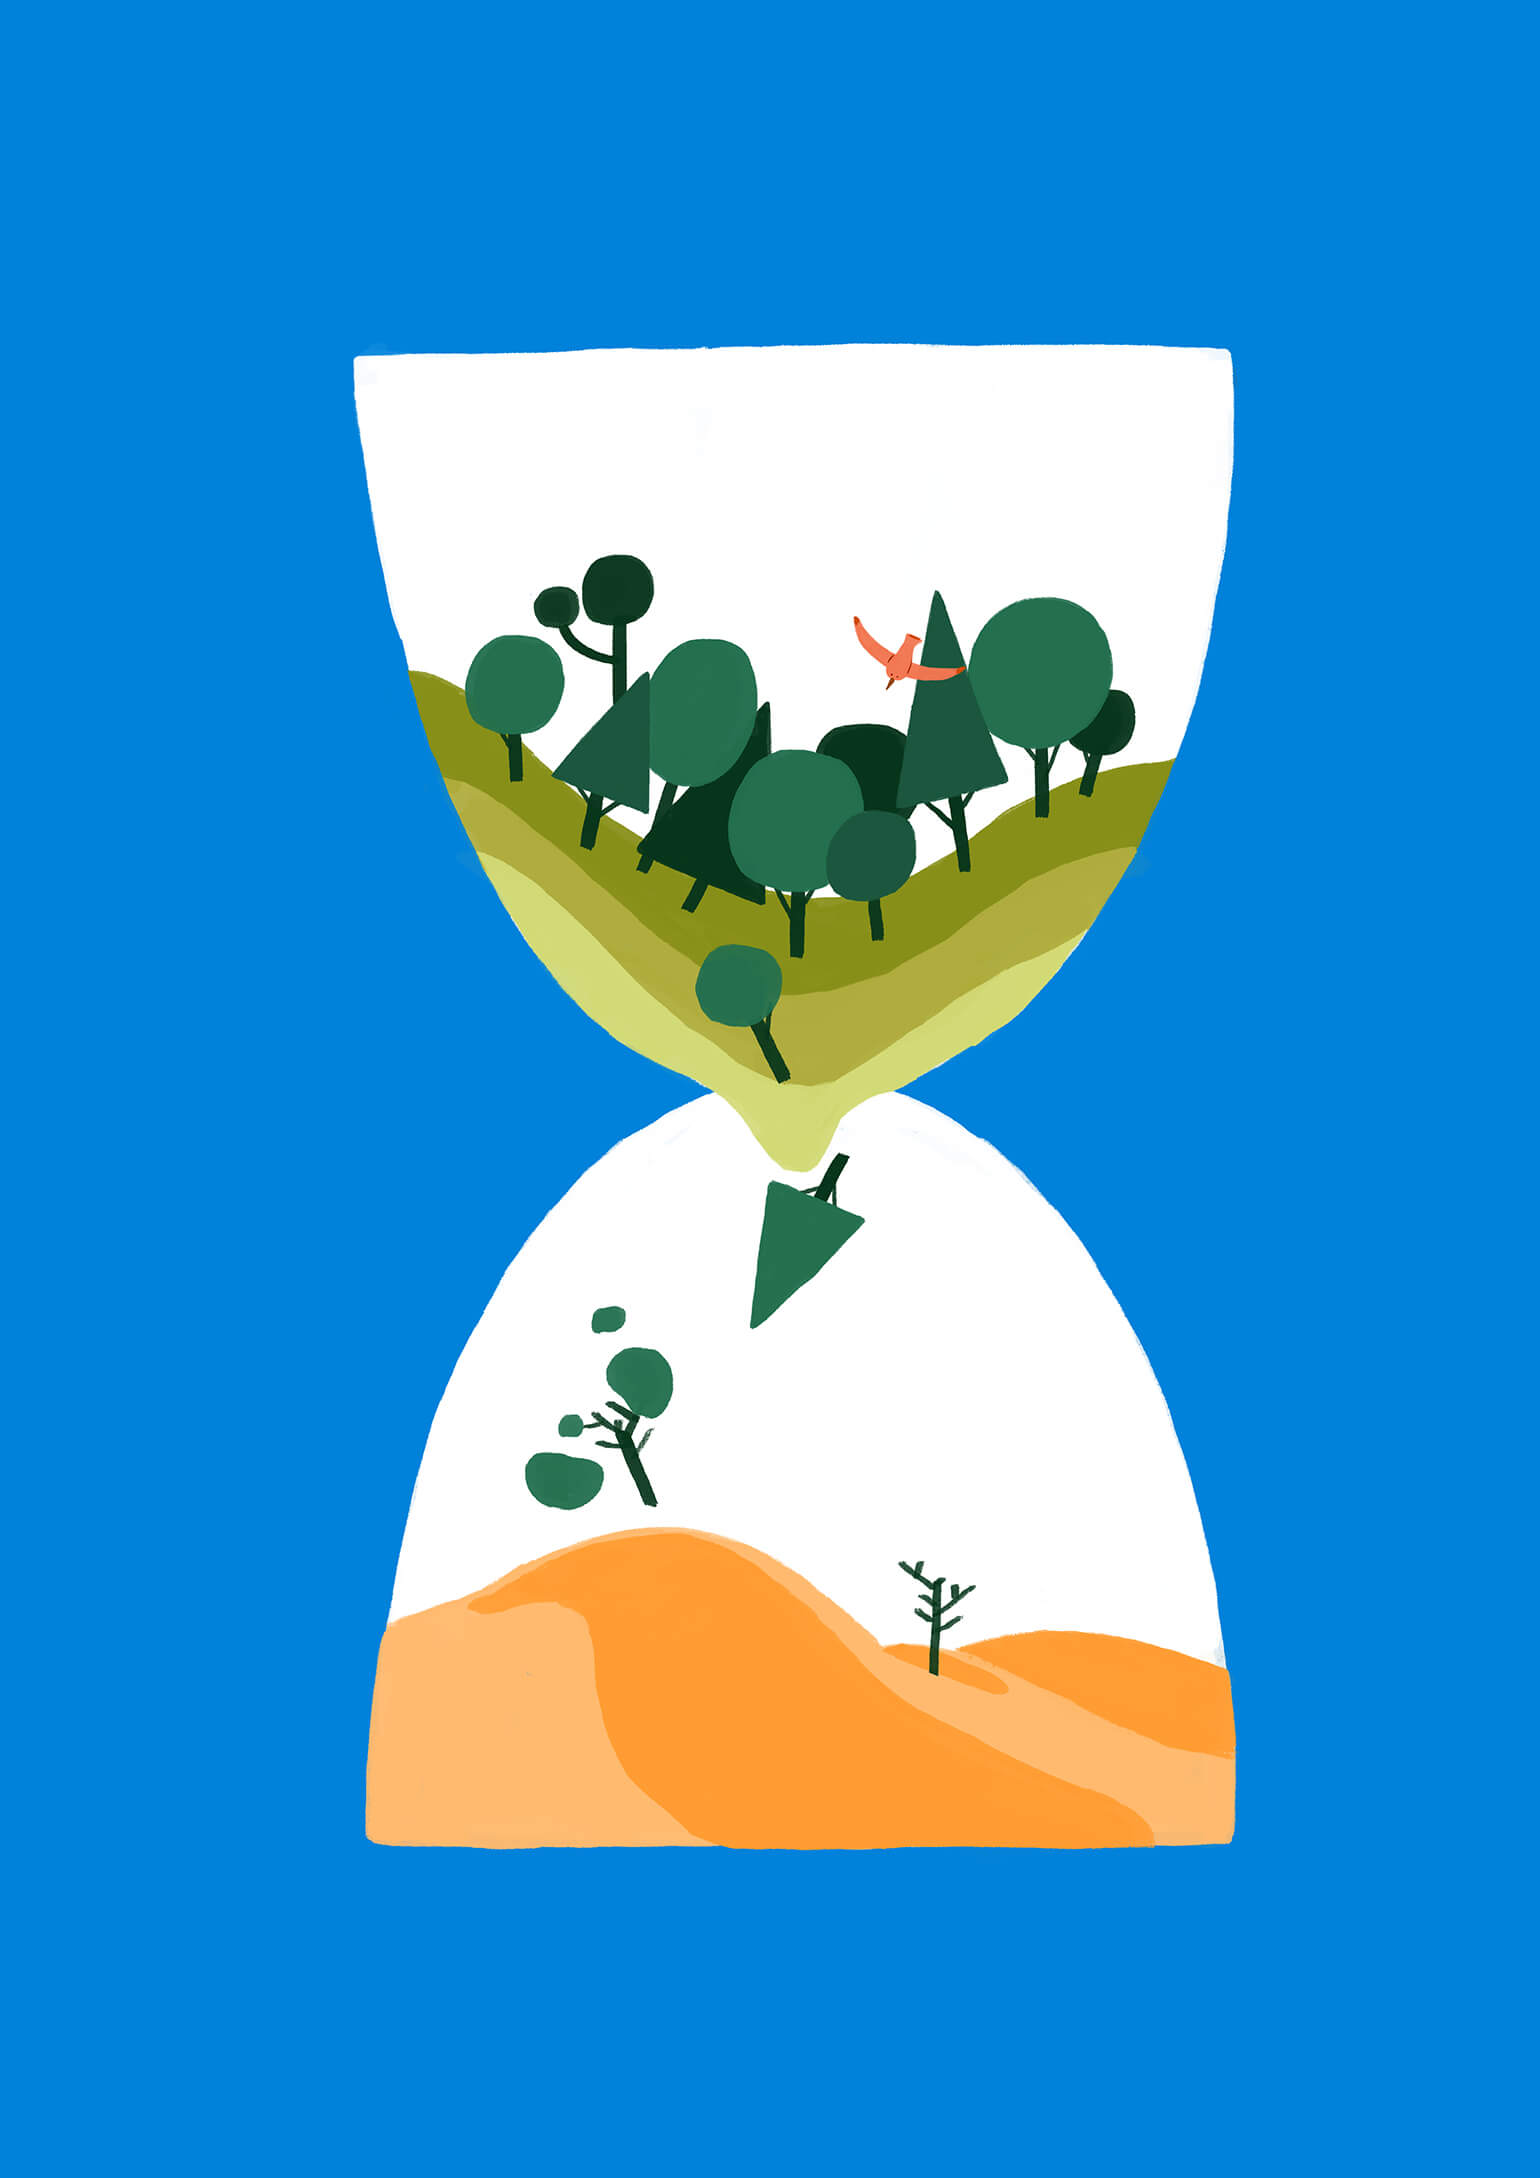 climate-change-hourglass-sand-forest-time-illustration-violeta-noy